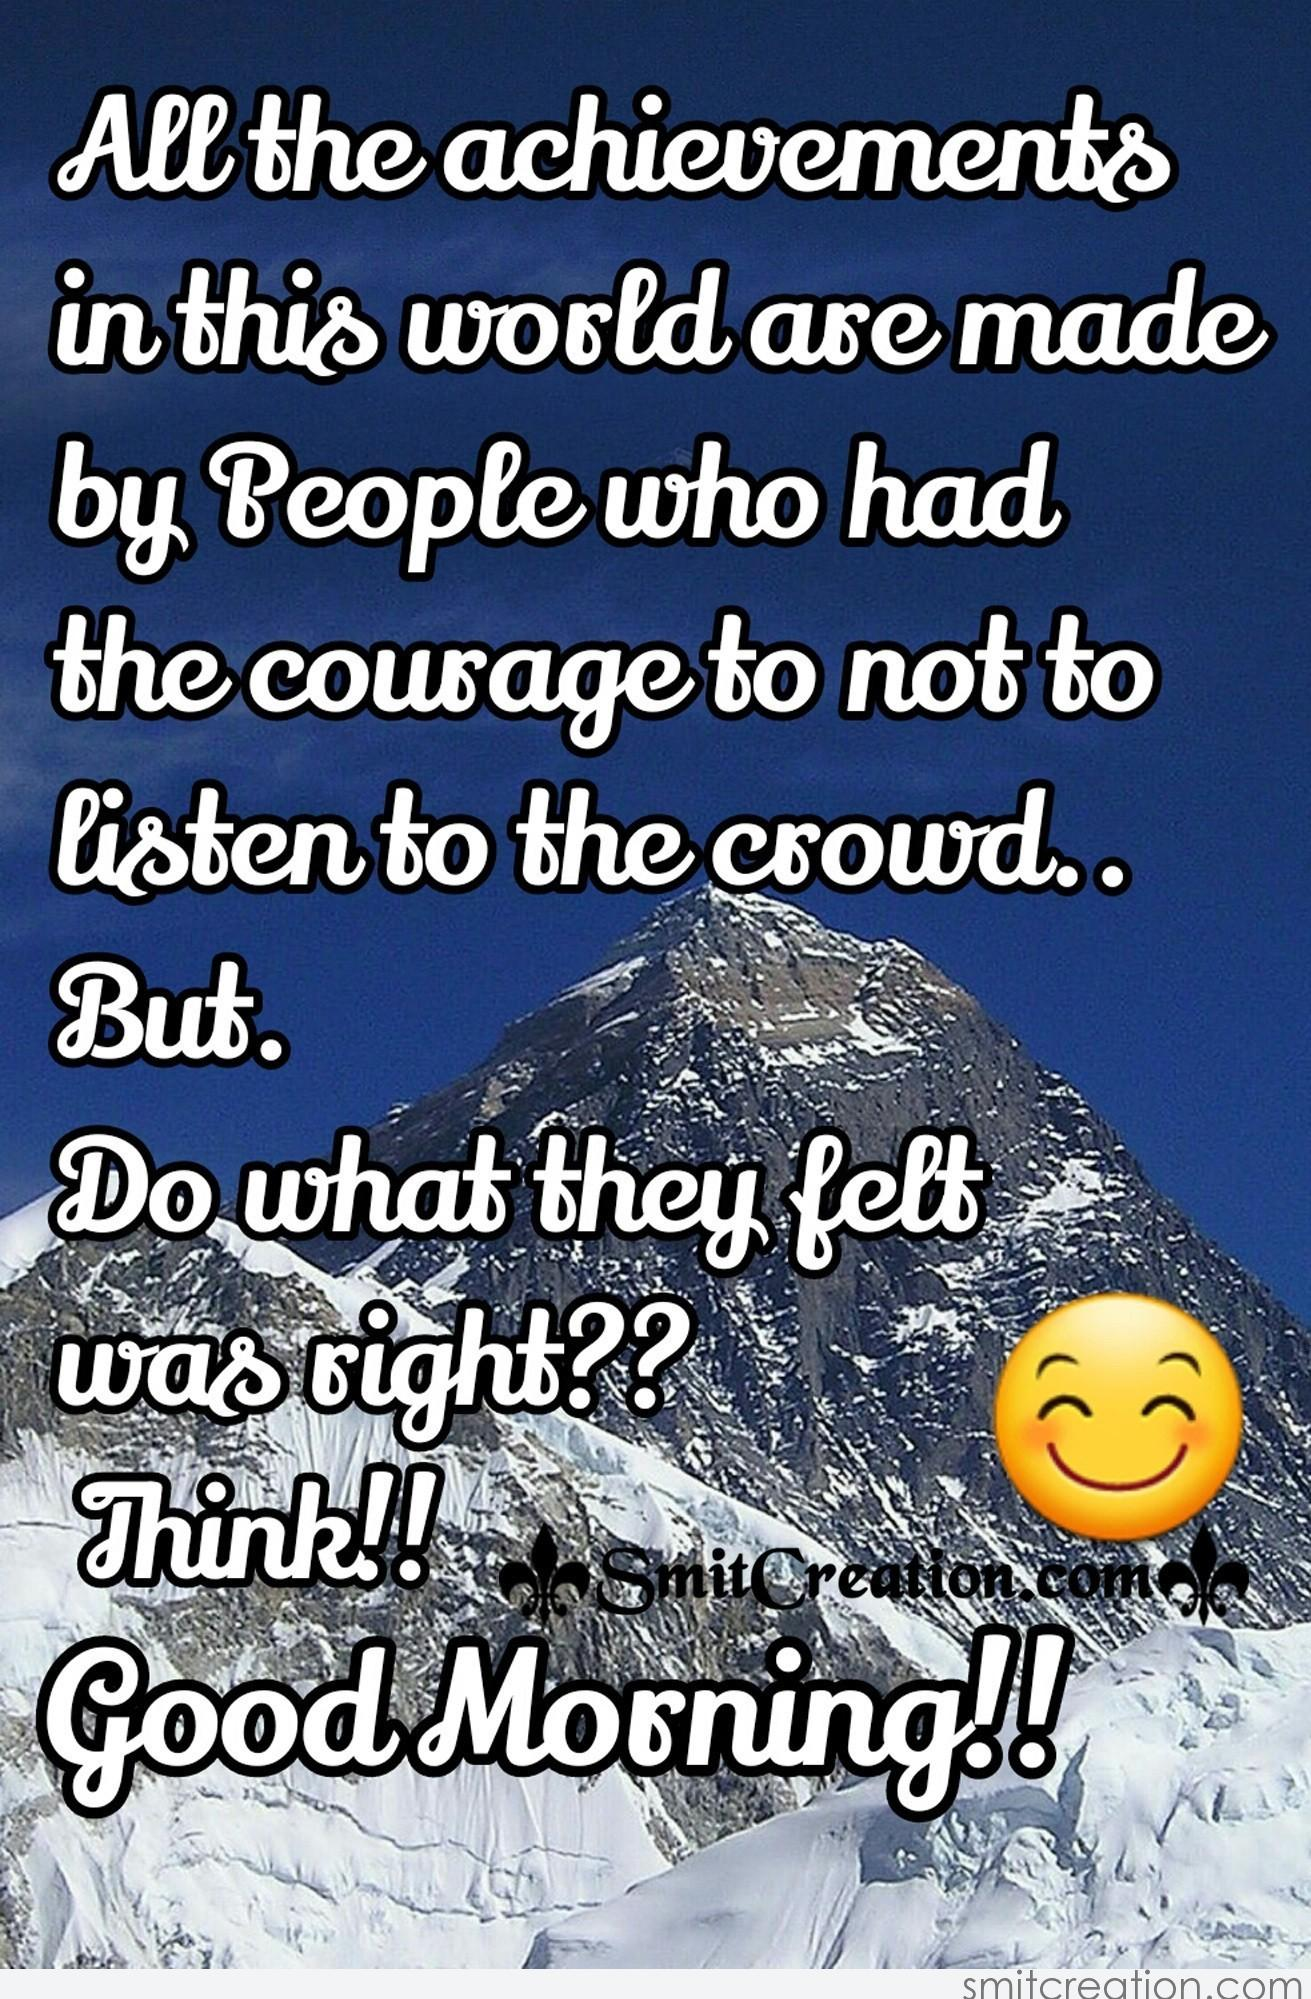 Good Morning Inspirational Quotes Pictures and Graphics ...